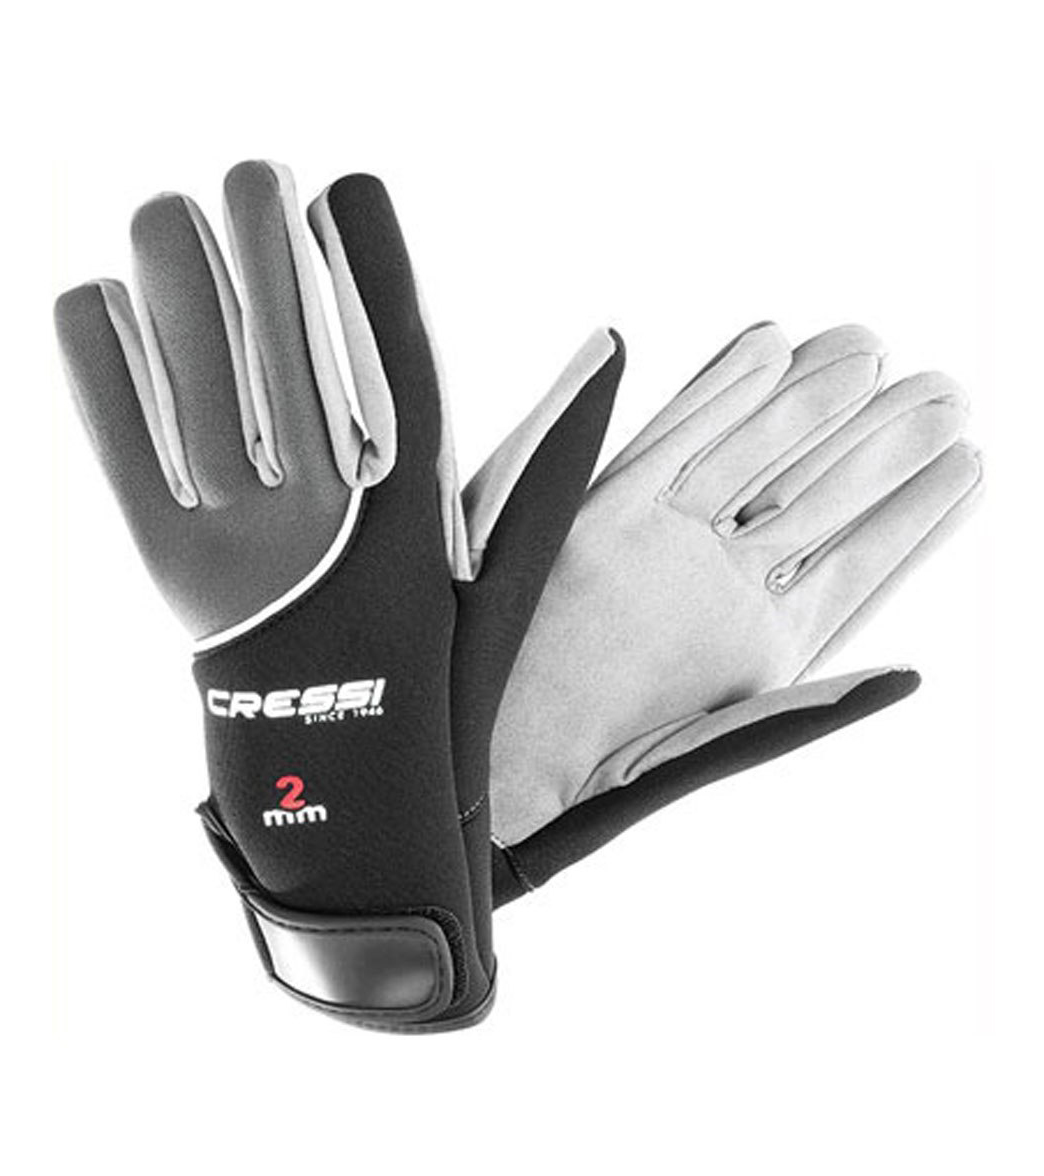 Sporting Goods Cressi 2mm Tropical Gloves In Short Supply